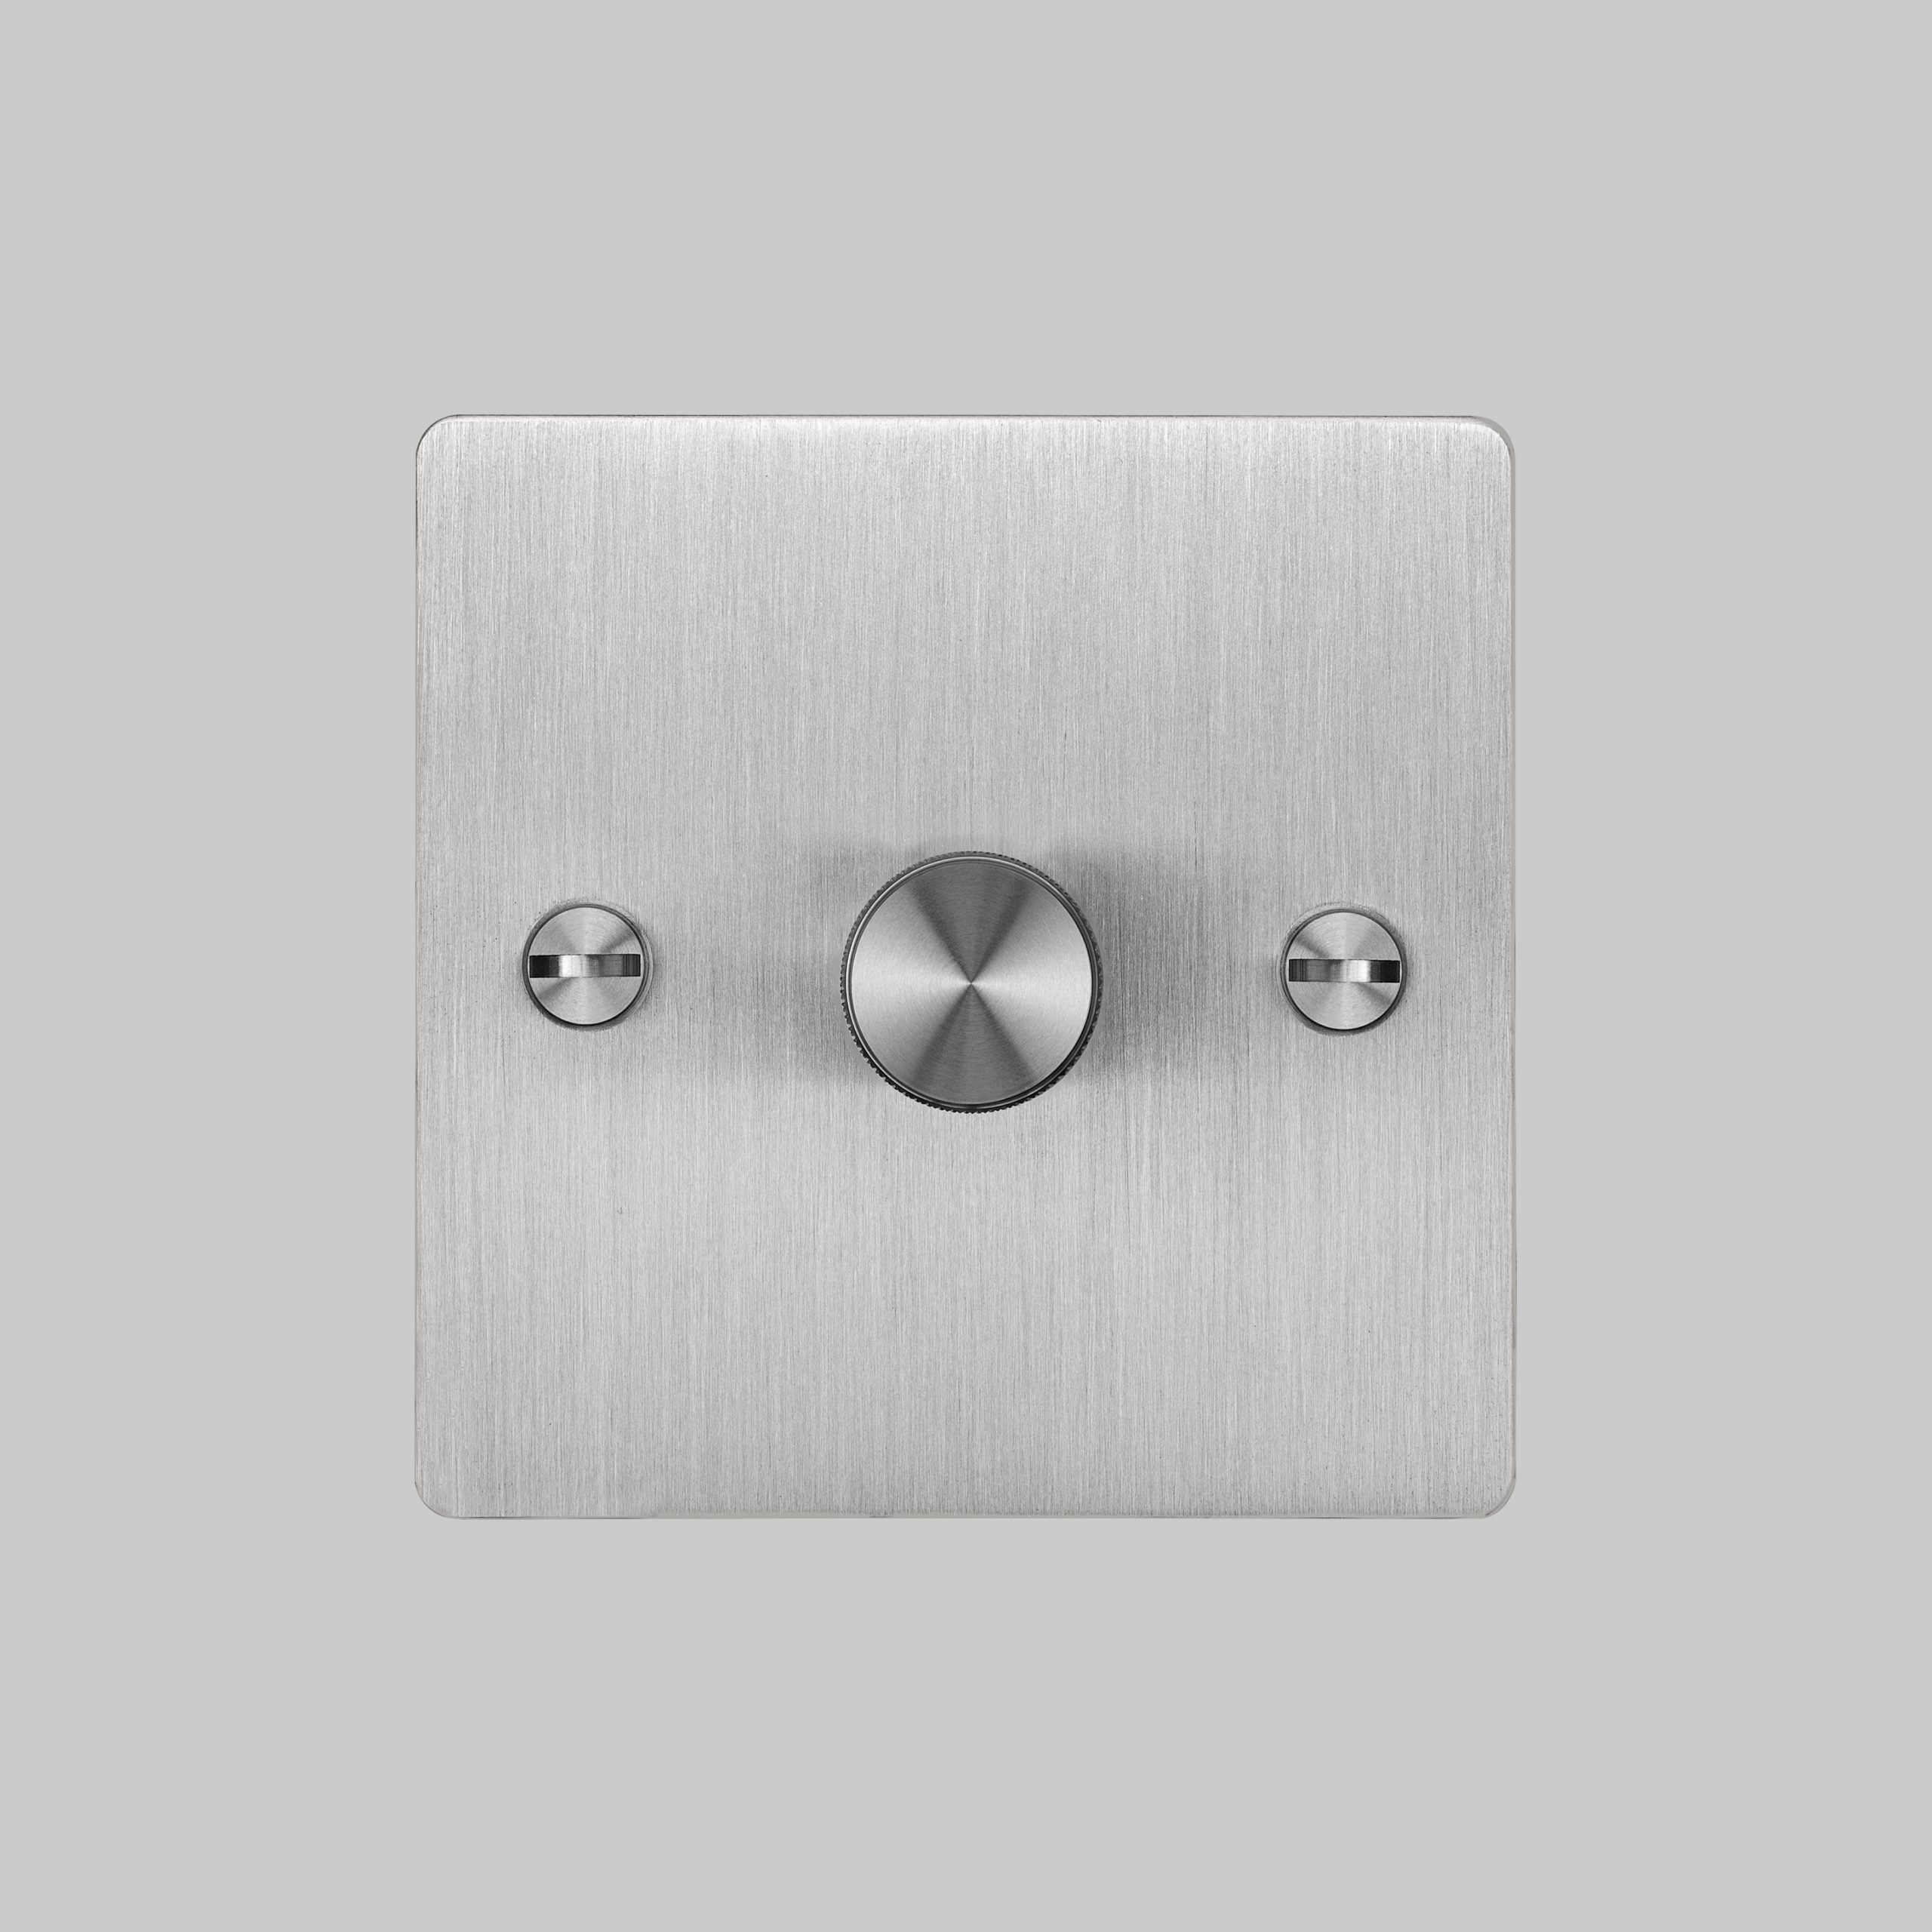 2. Buster+Punch_1G_Dimmer_Front_Steel